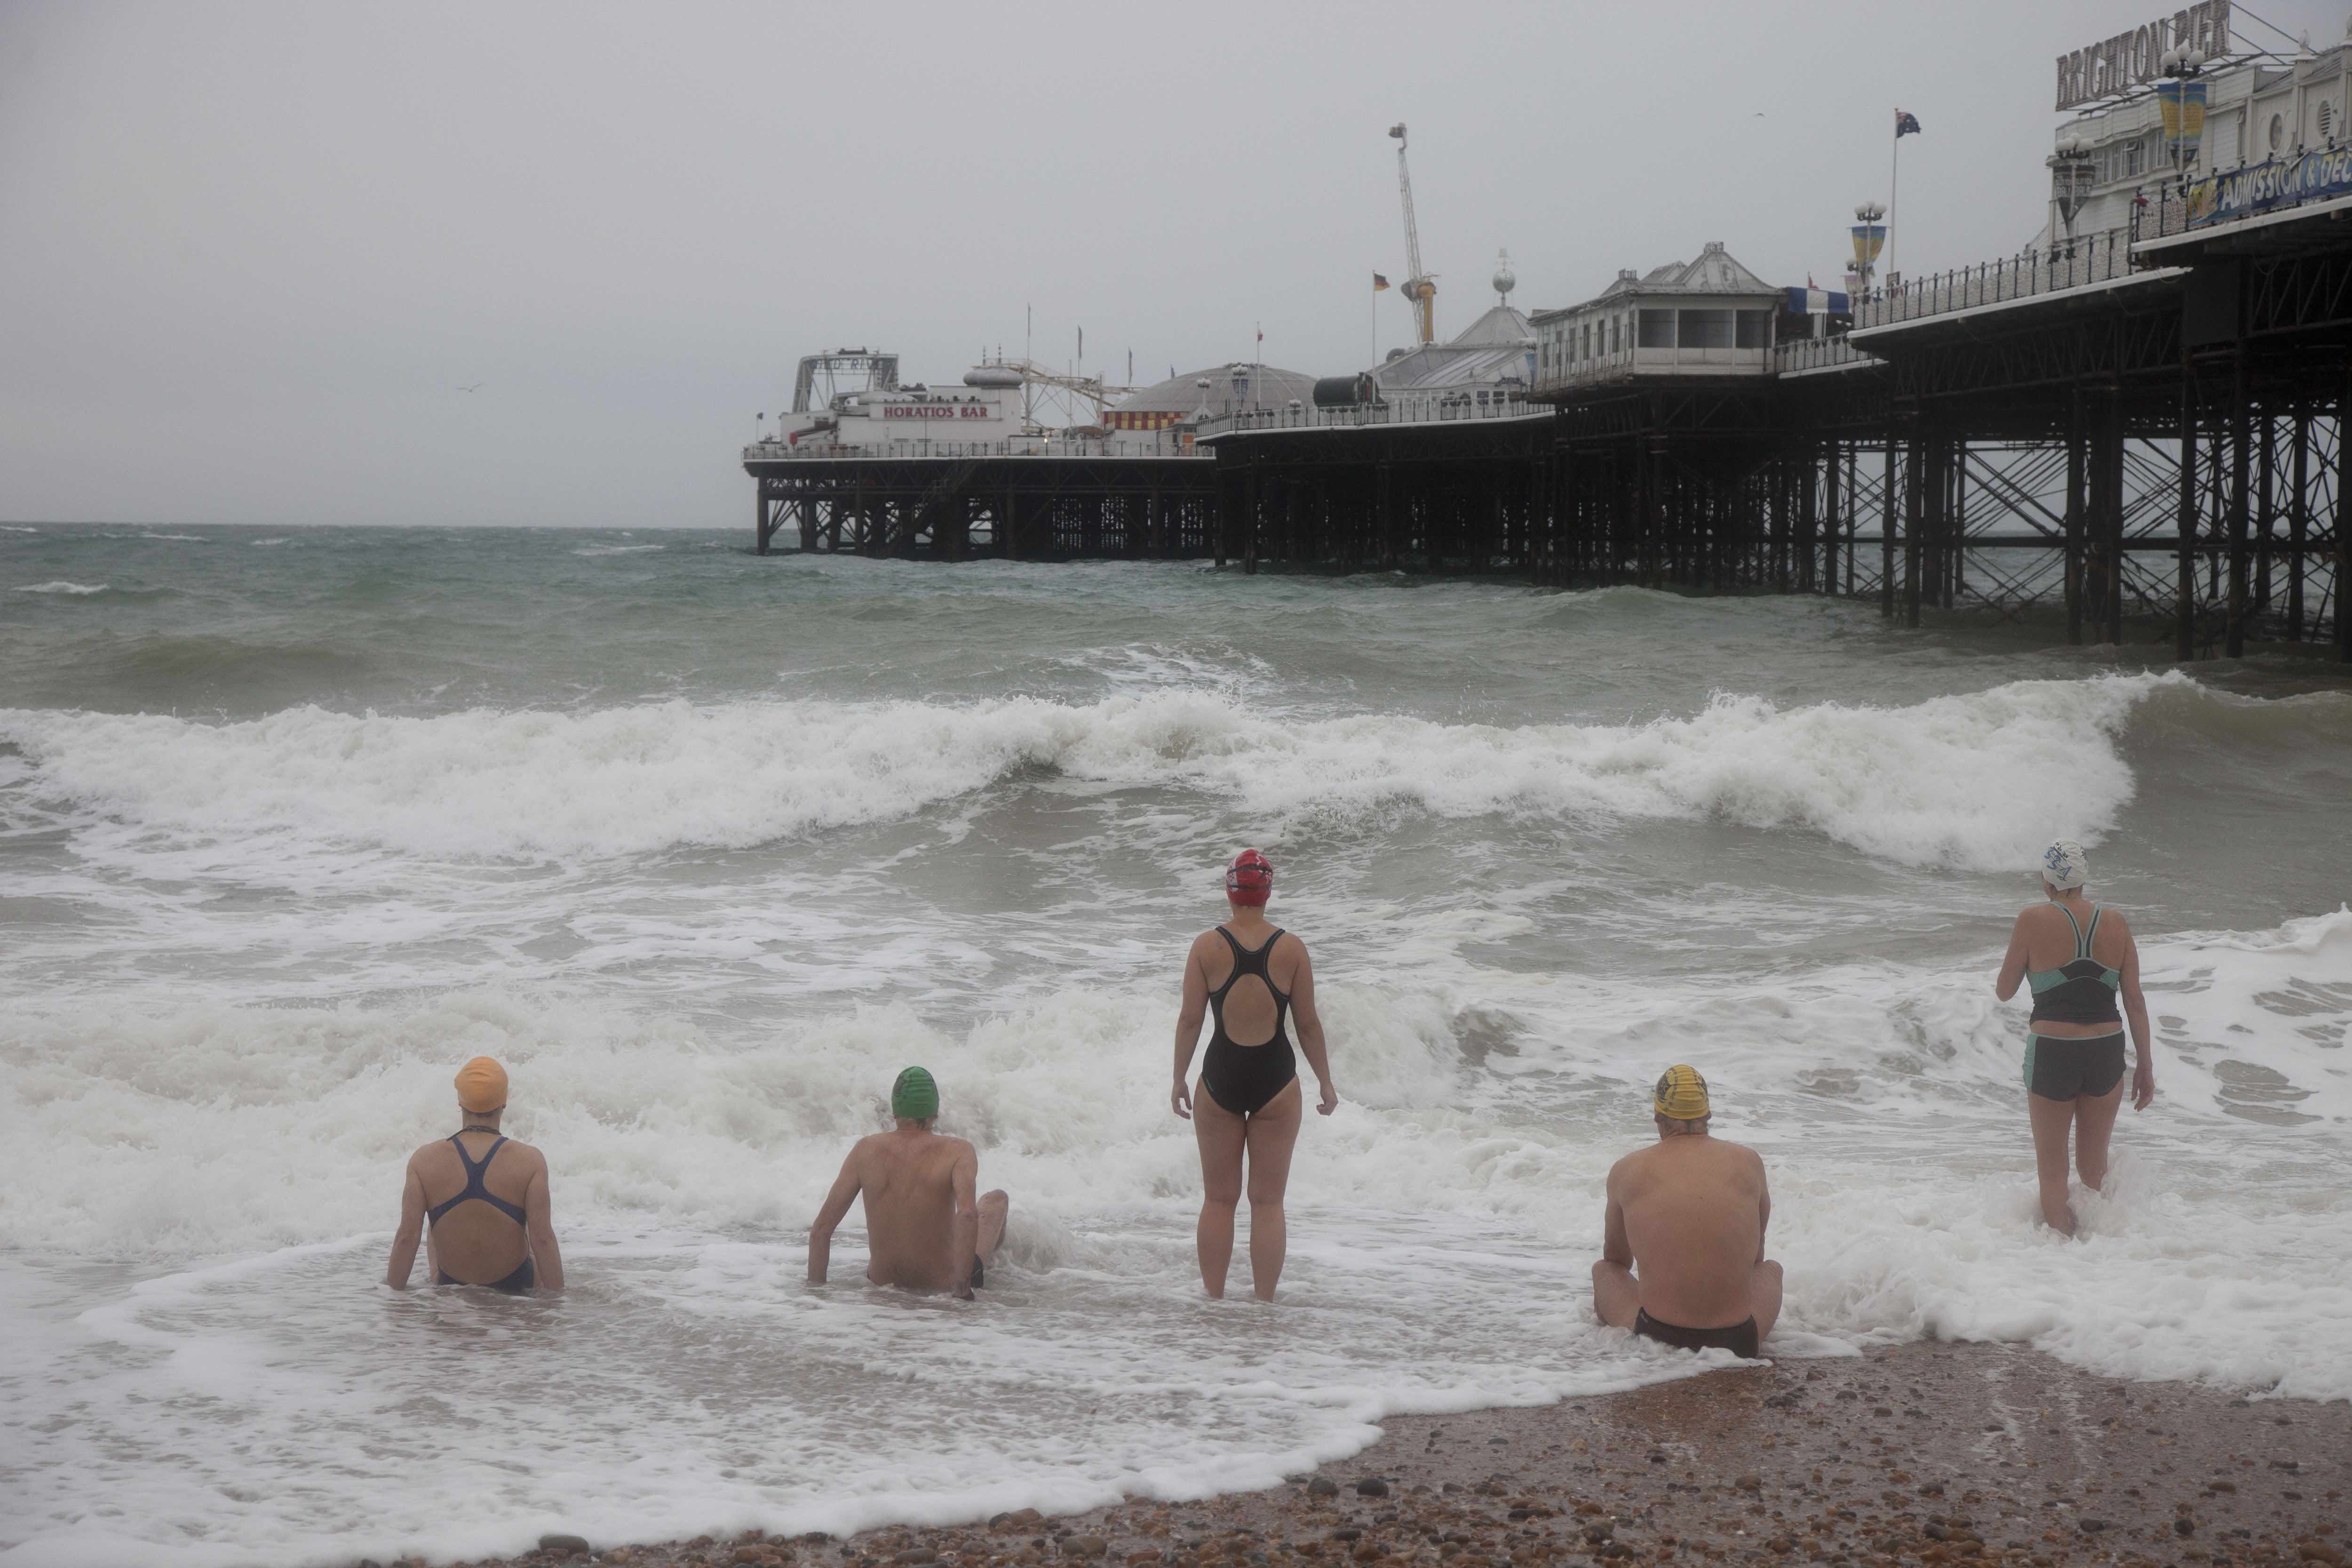 GB. England. Brighton. Members of the Sea Swimming Club who meet daily to swim in the sea. 2010 © Martin Parr / Magnum Photos